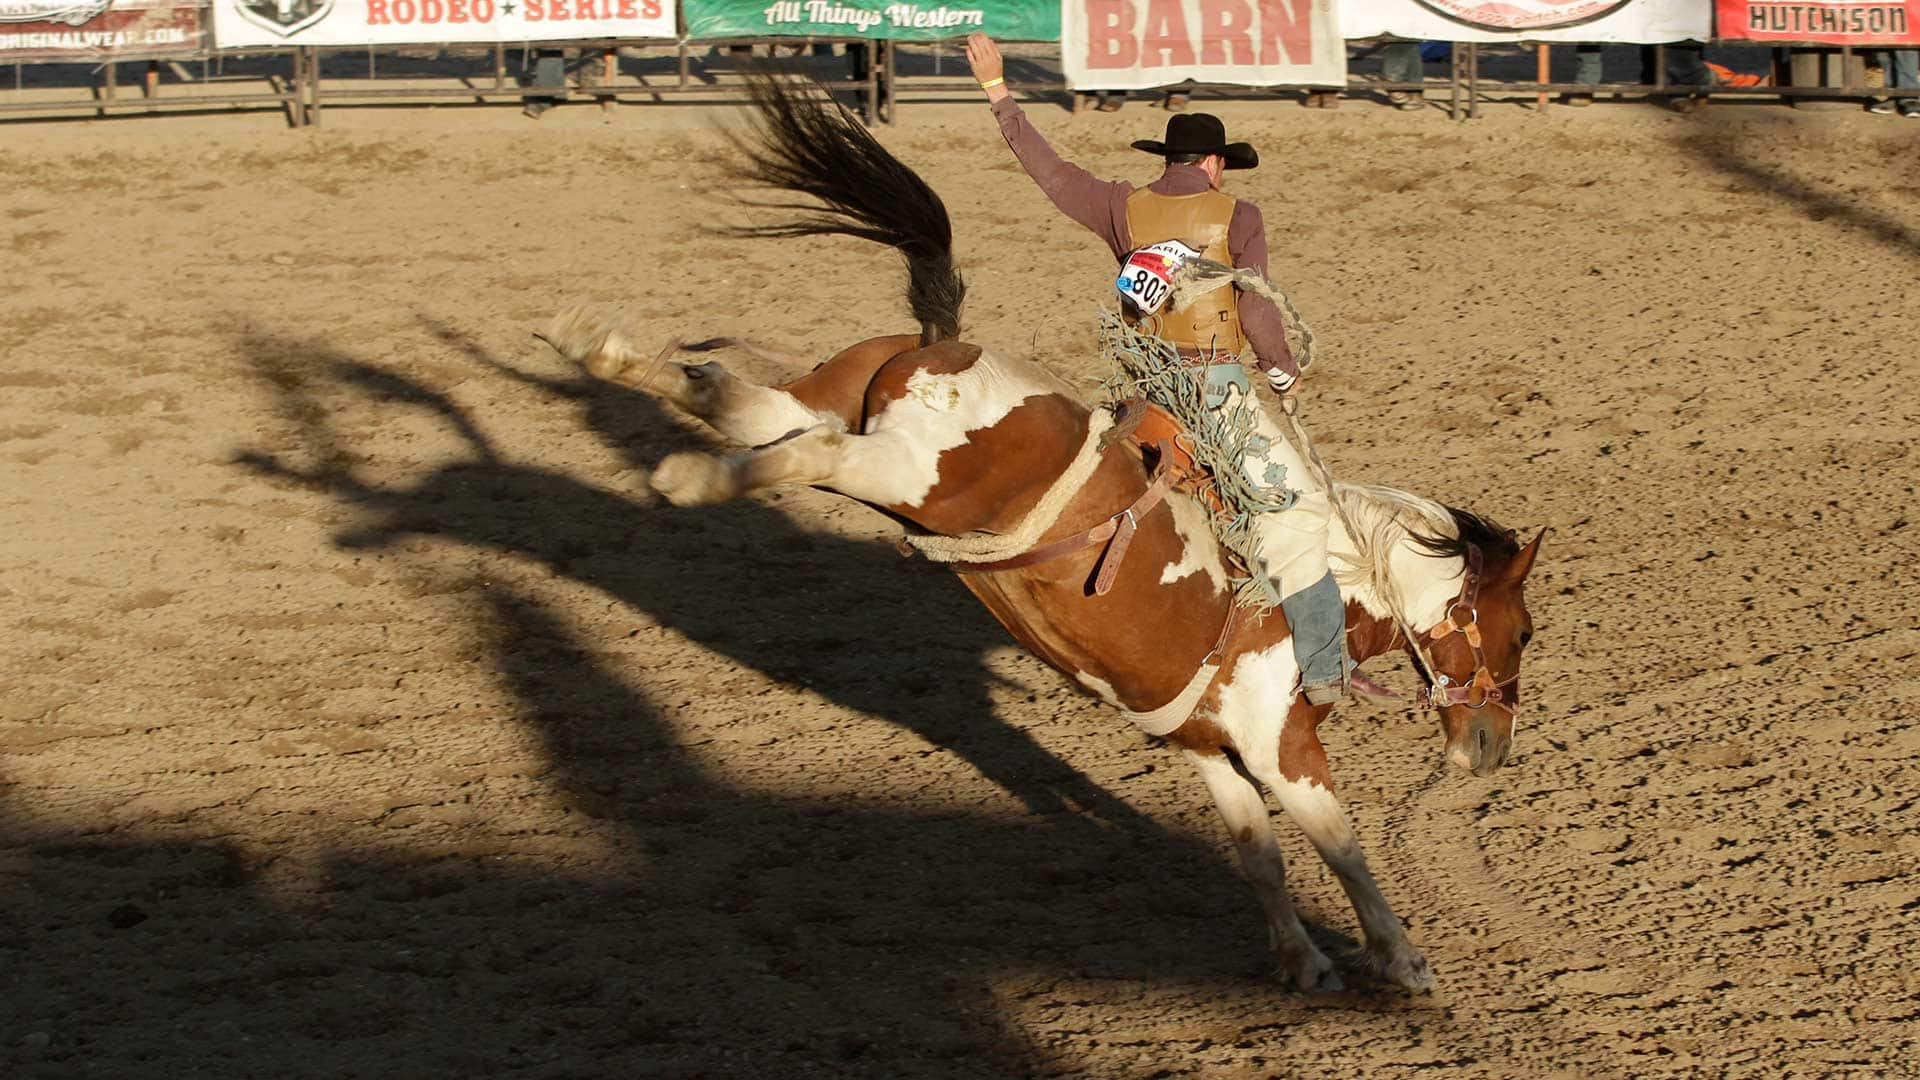 Rodeo Events Round Up